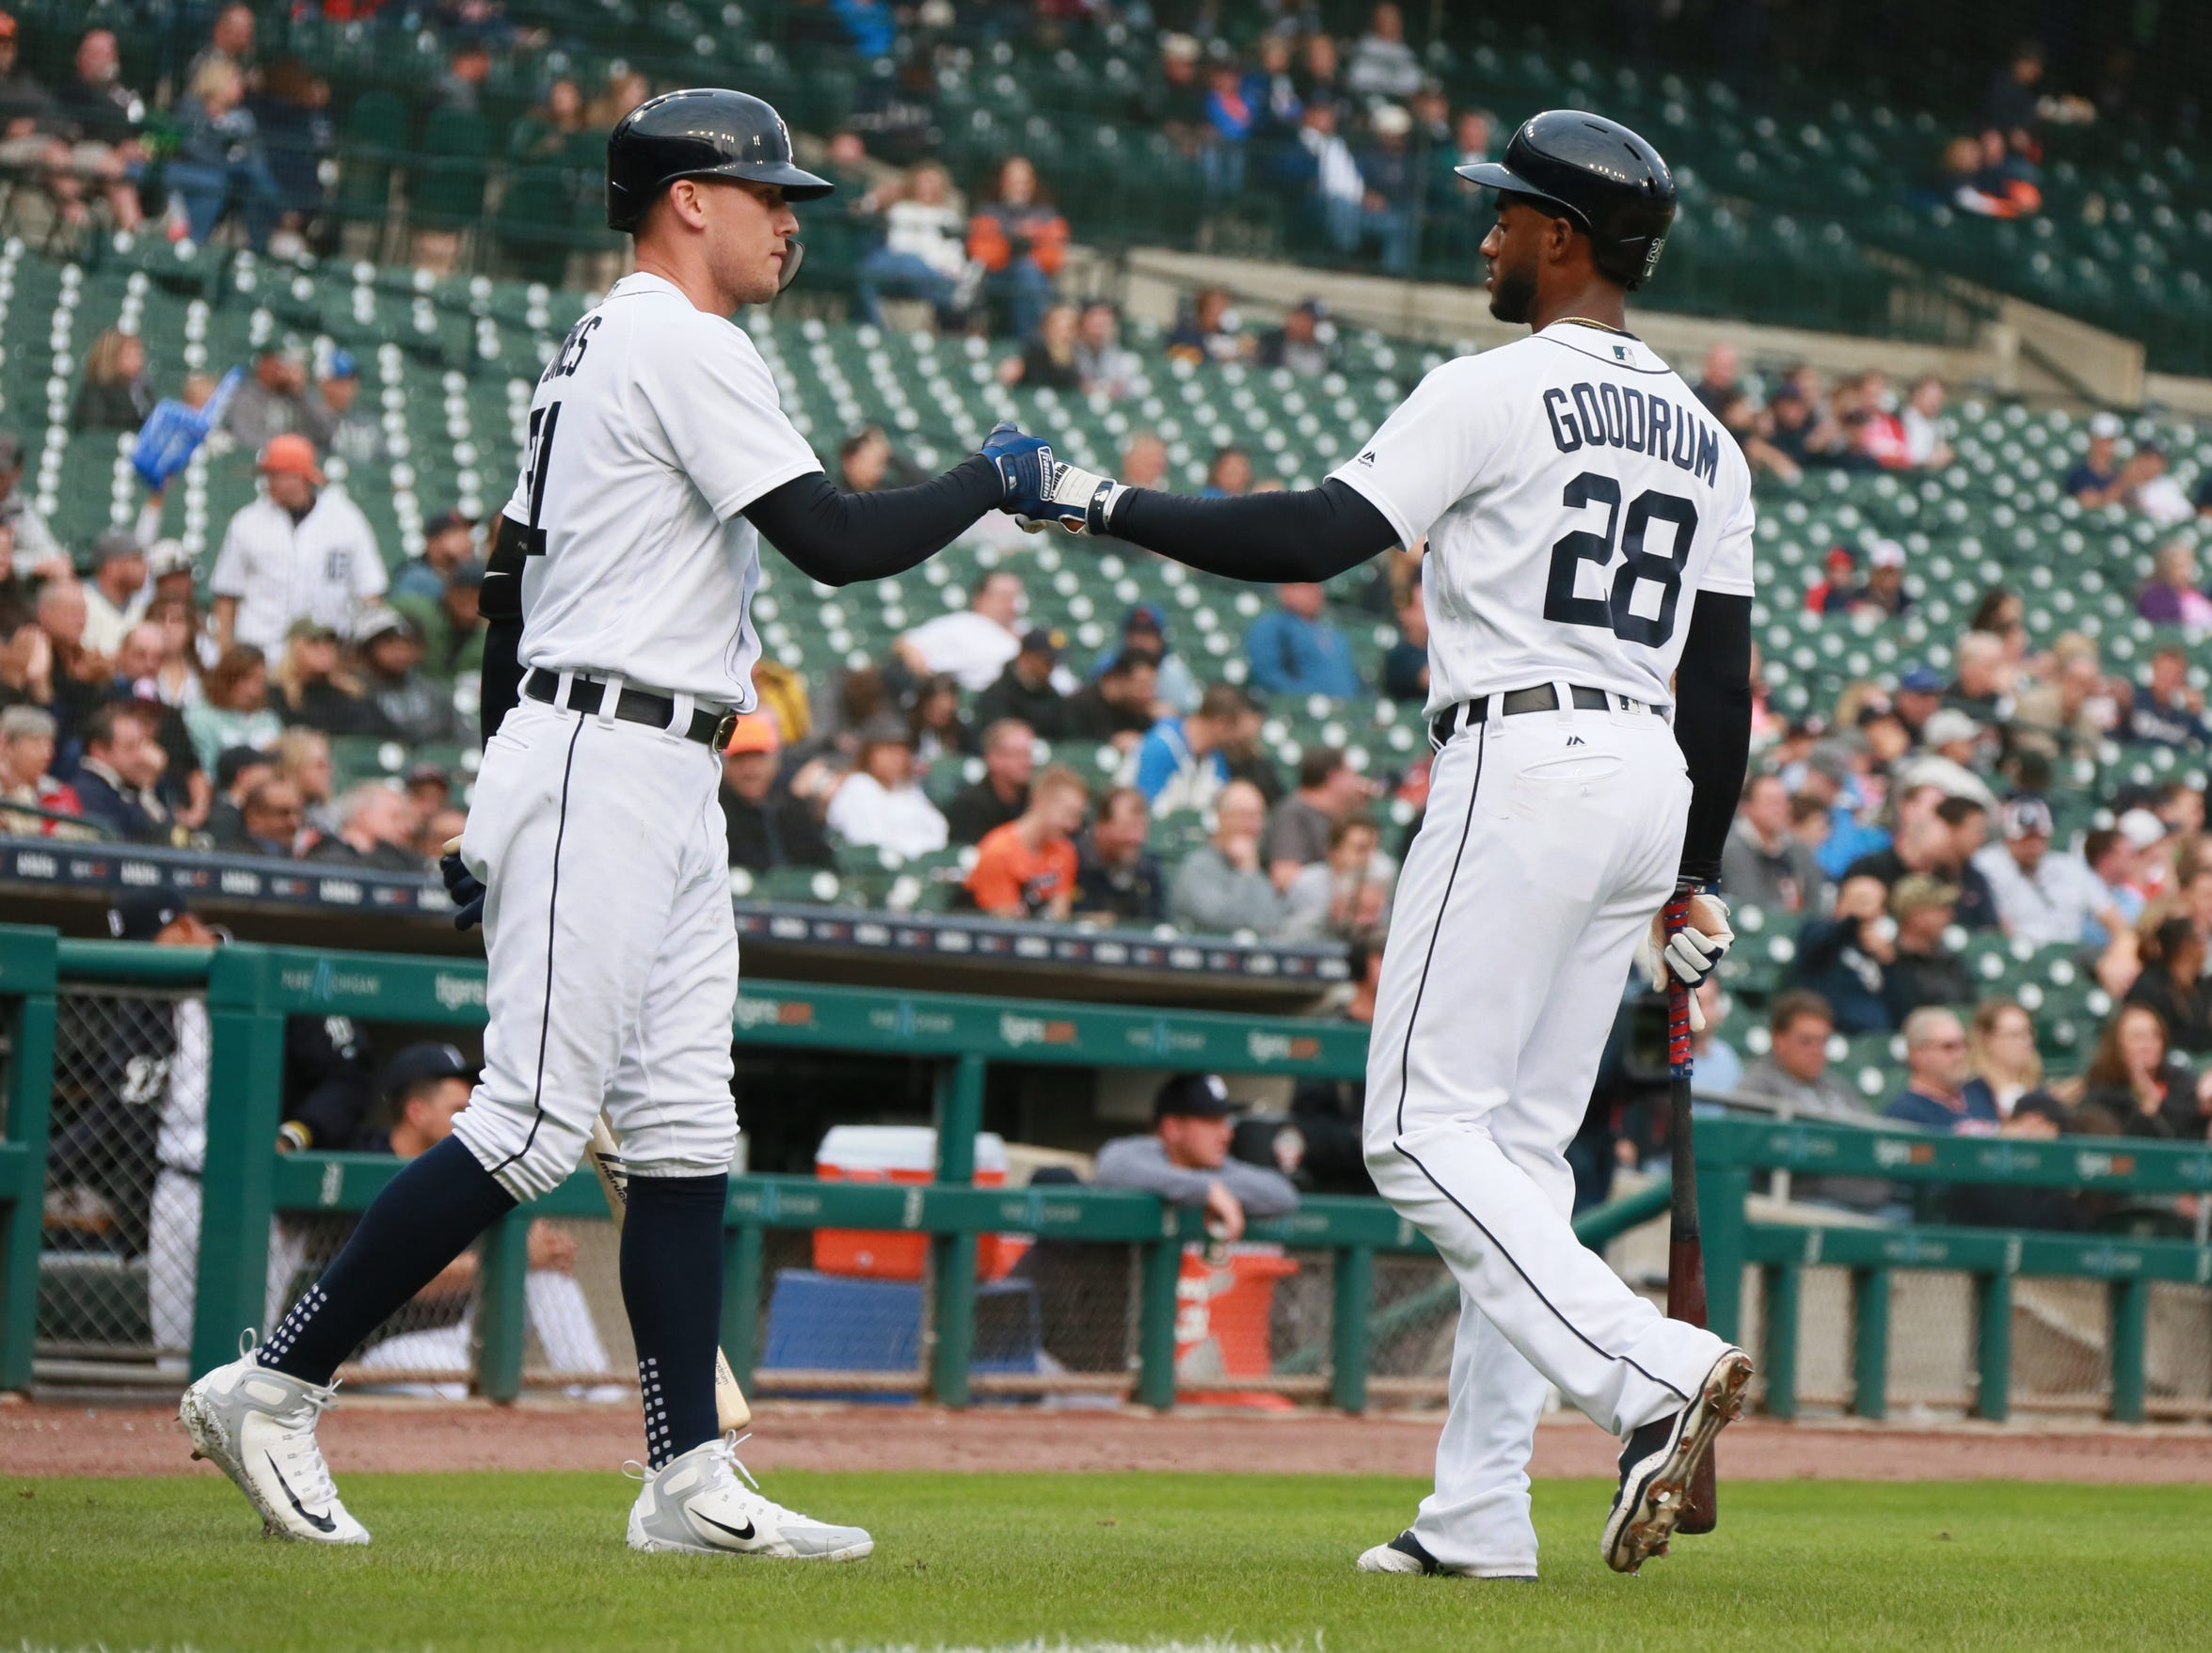 Tigers center fielder JaCoby Jones, left, pounds it with first baseman Niko Goodrum after he scores the Tigers first run in the second inning on Monday, Sept. 10, 2018, at Comerica Park.